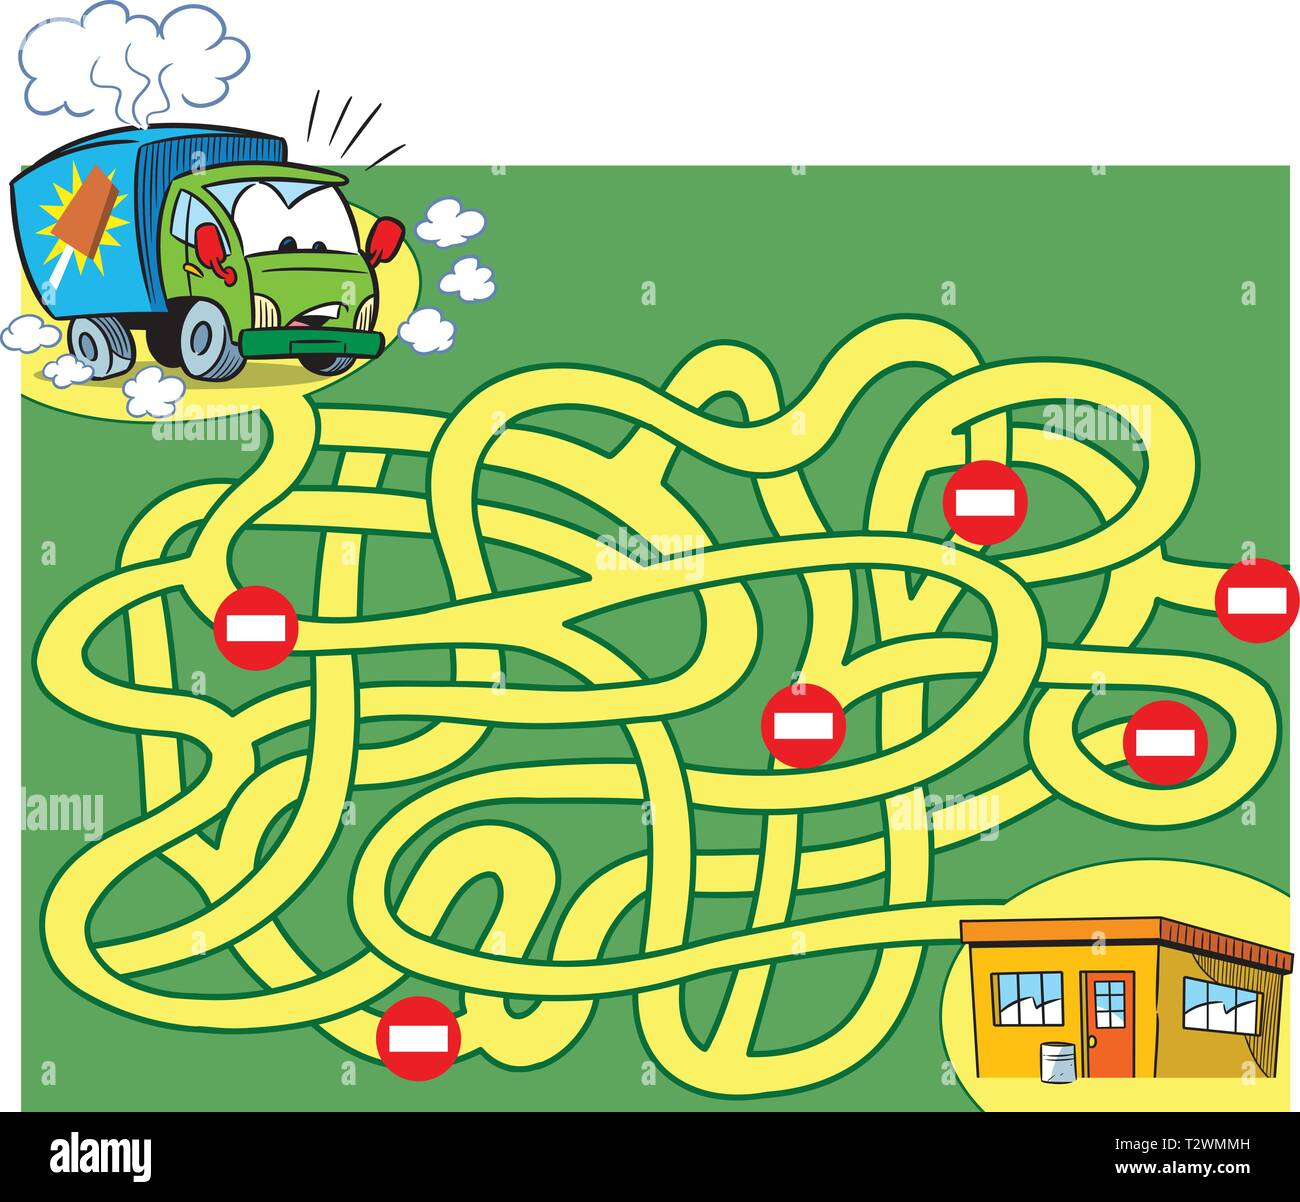 In vector illustration, a logic puzzle for children, in which you need to decide how to get an ice cream truck to the store. - Stock Image